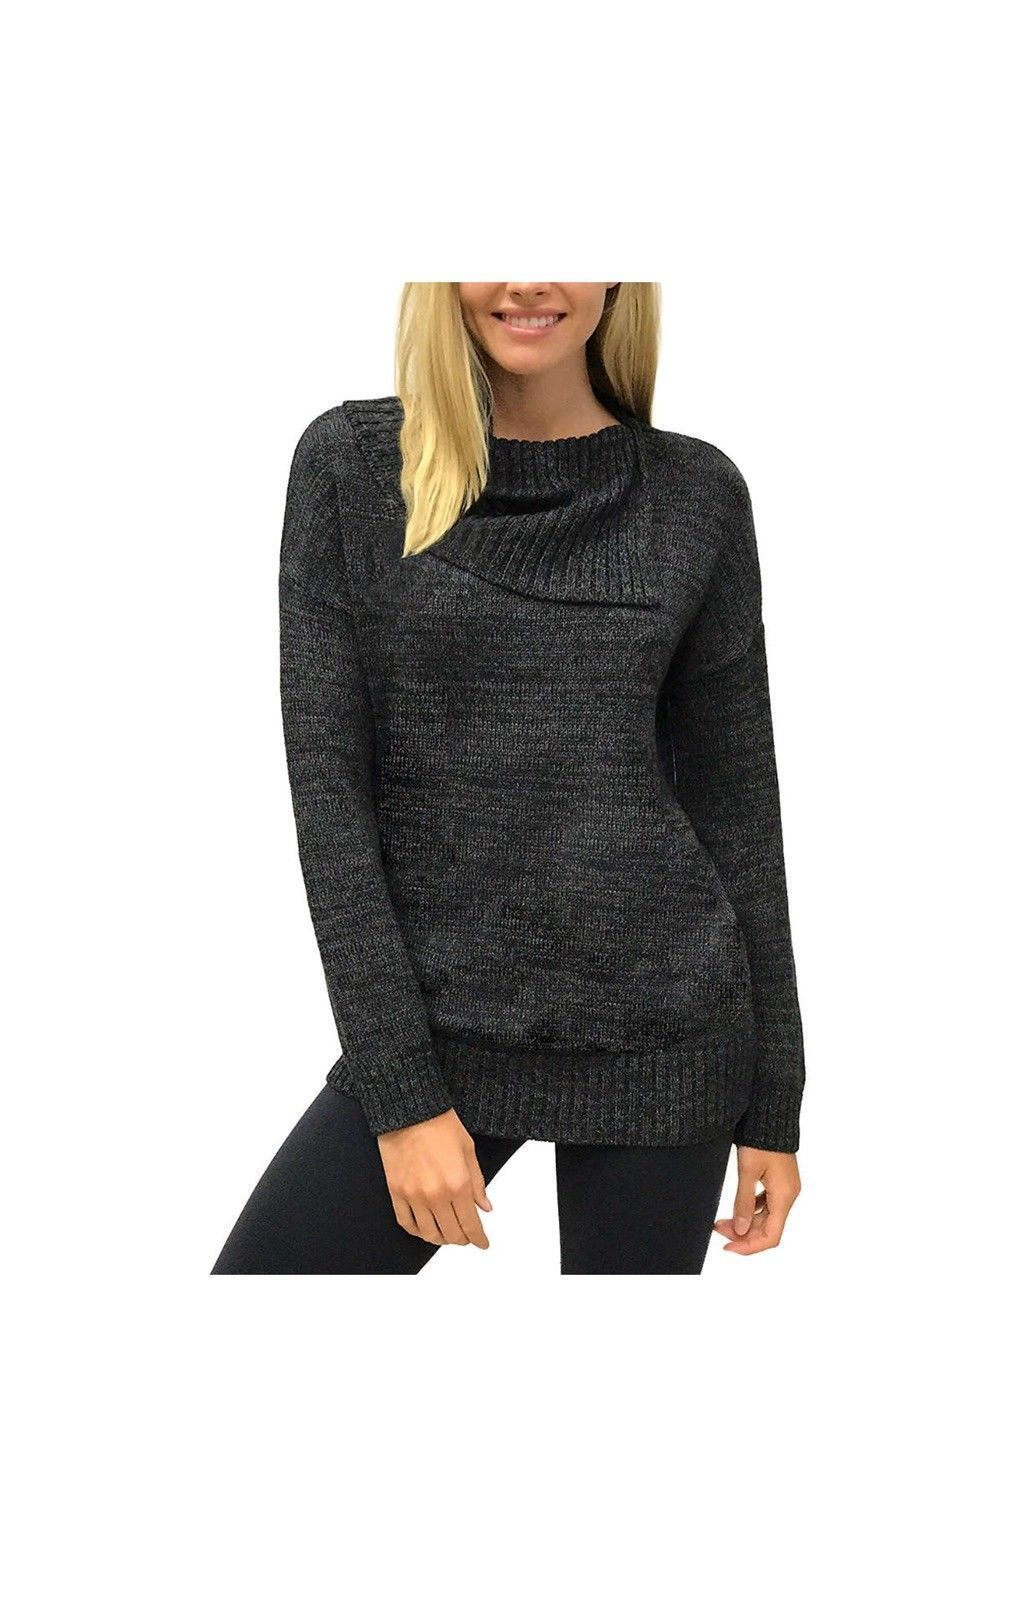 MATTY M Envelope Sweater Size X-Small Charcoal - BrandsForLess.CO